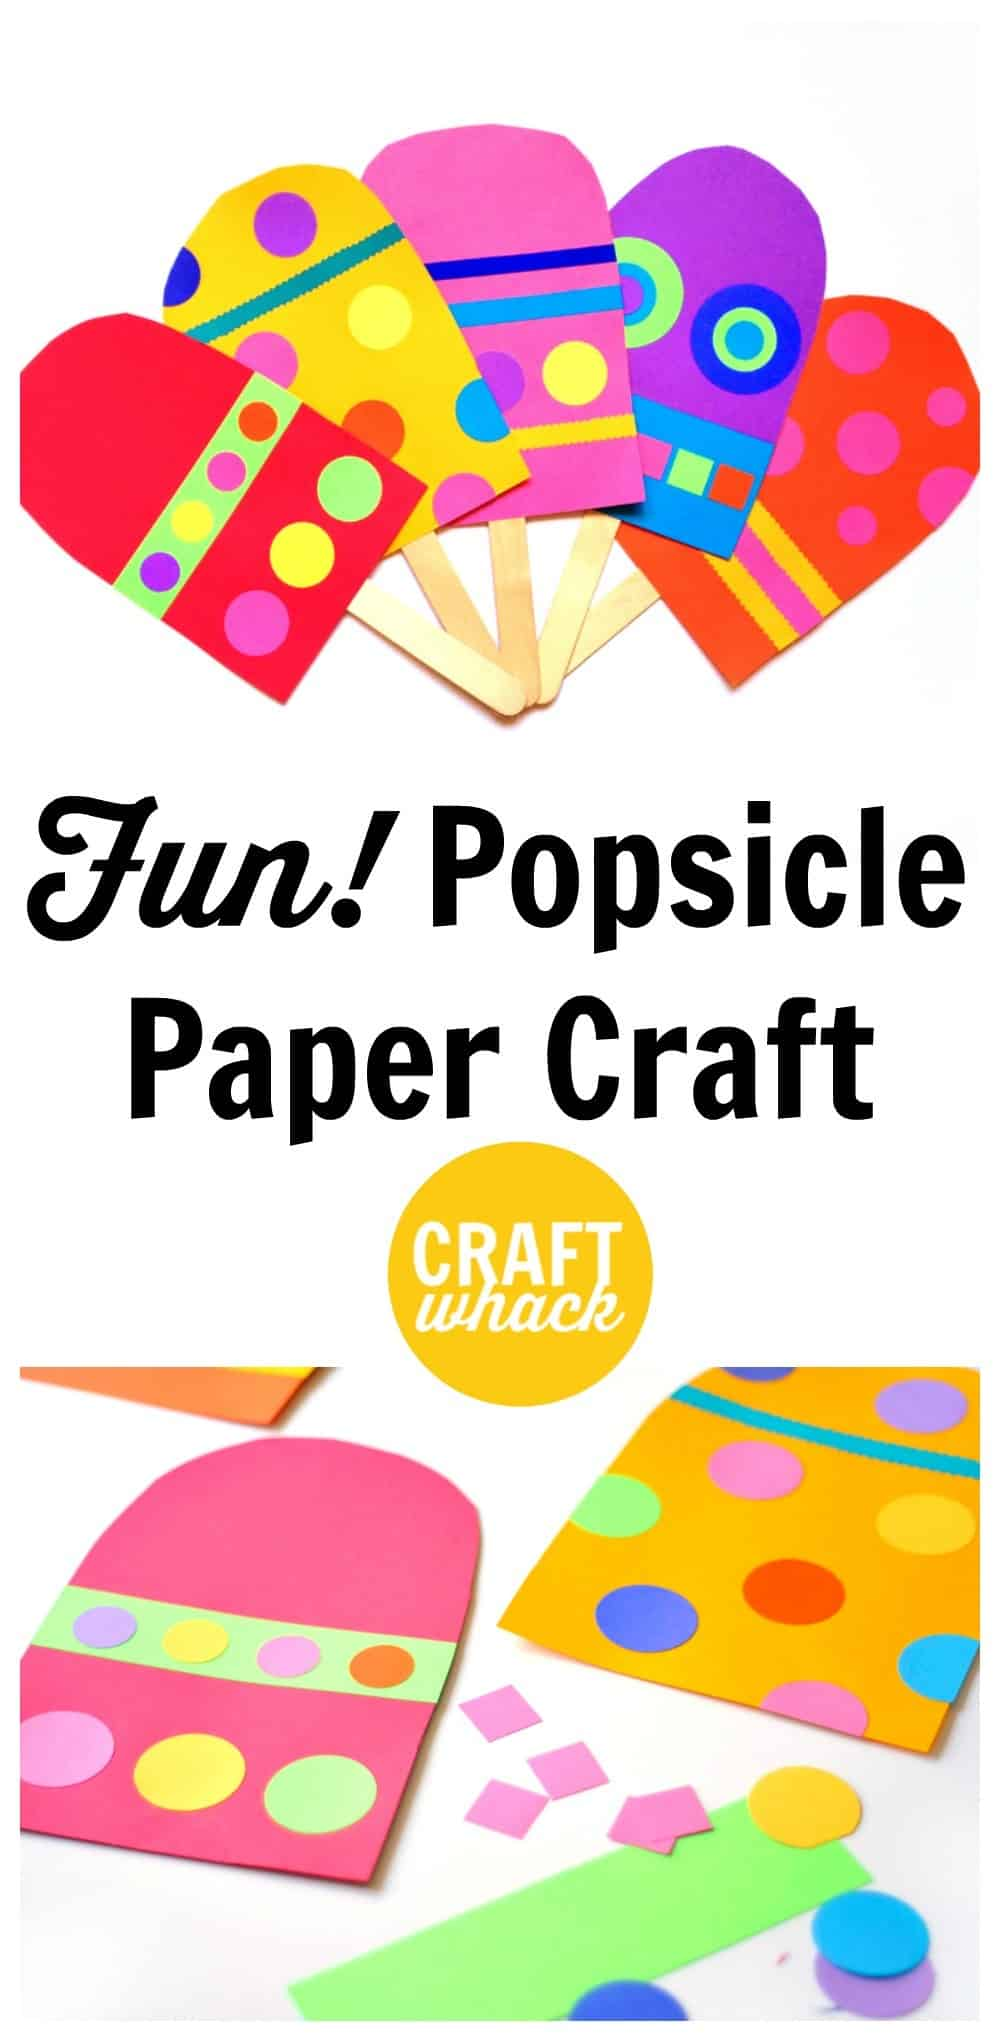 popsicle paper craft